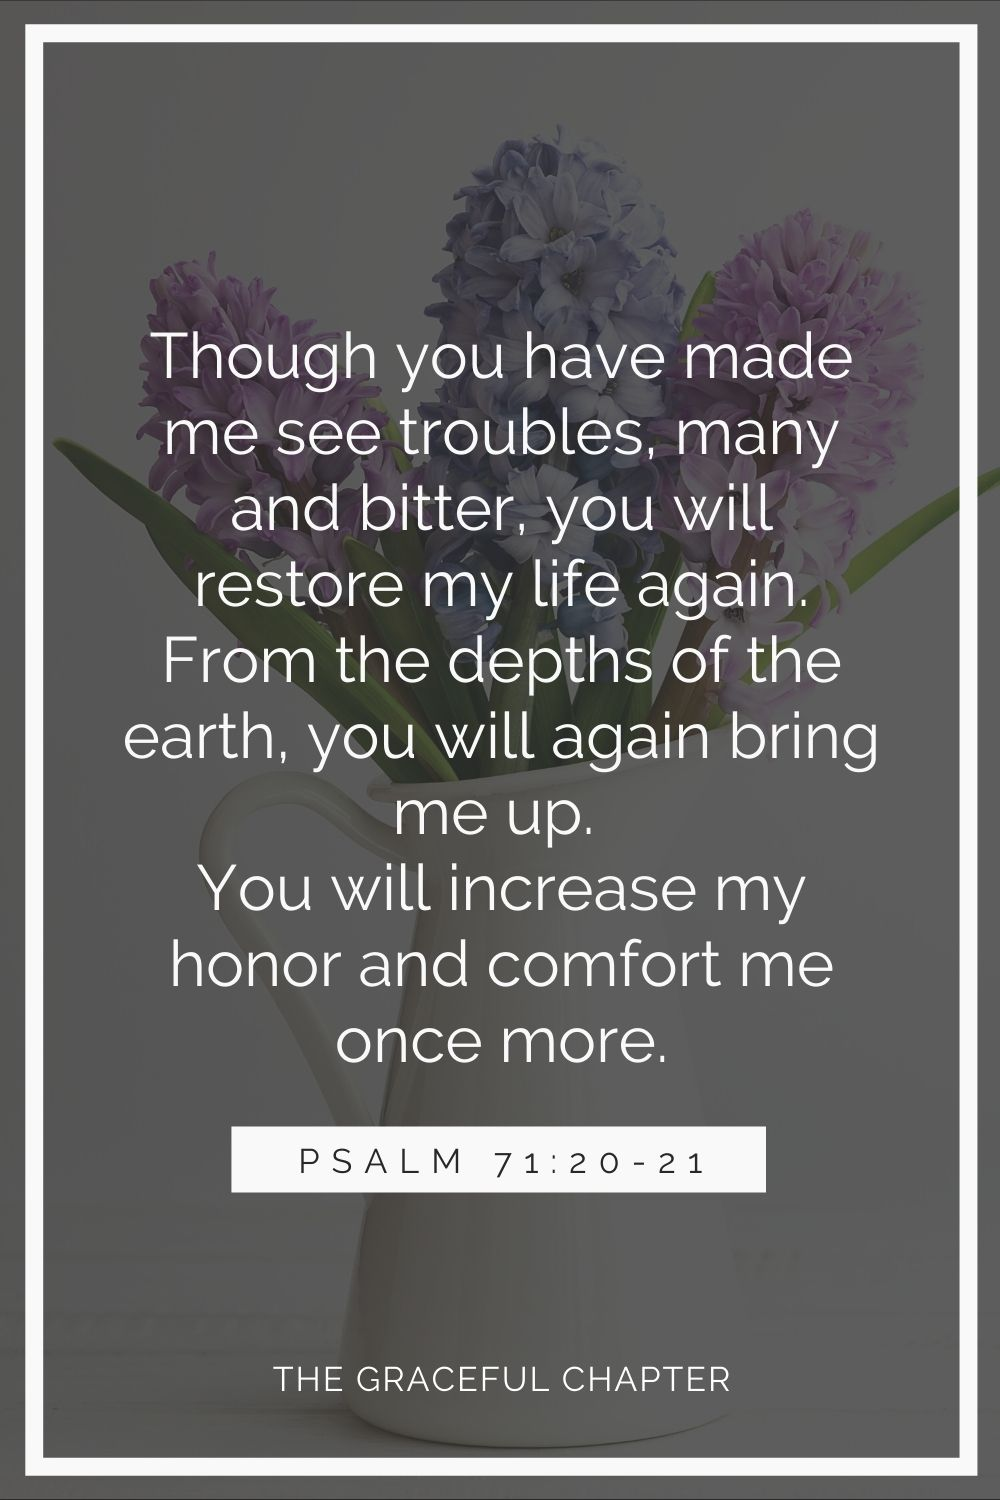 Though you have made me see troubles, many and bitter, you will restore my life again; from the depths of the earth you will again bring me up. You will increase my honor and comfort me once more. Psalm 71:20-21